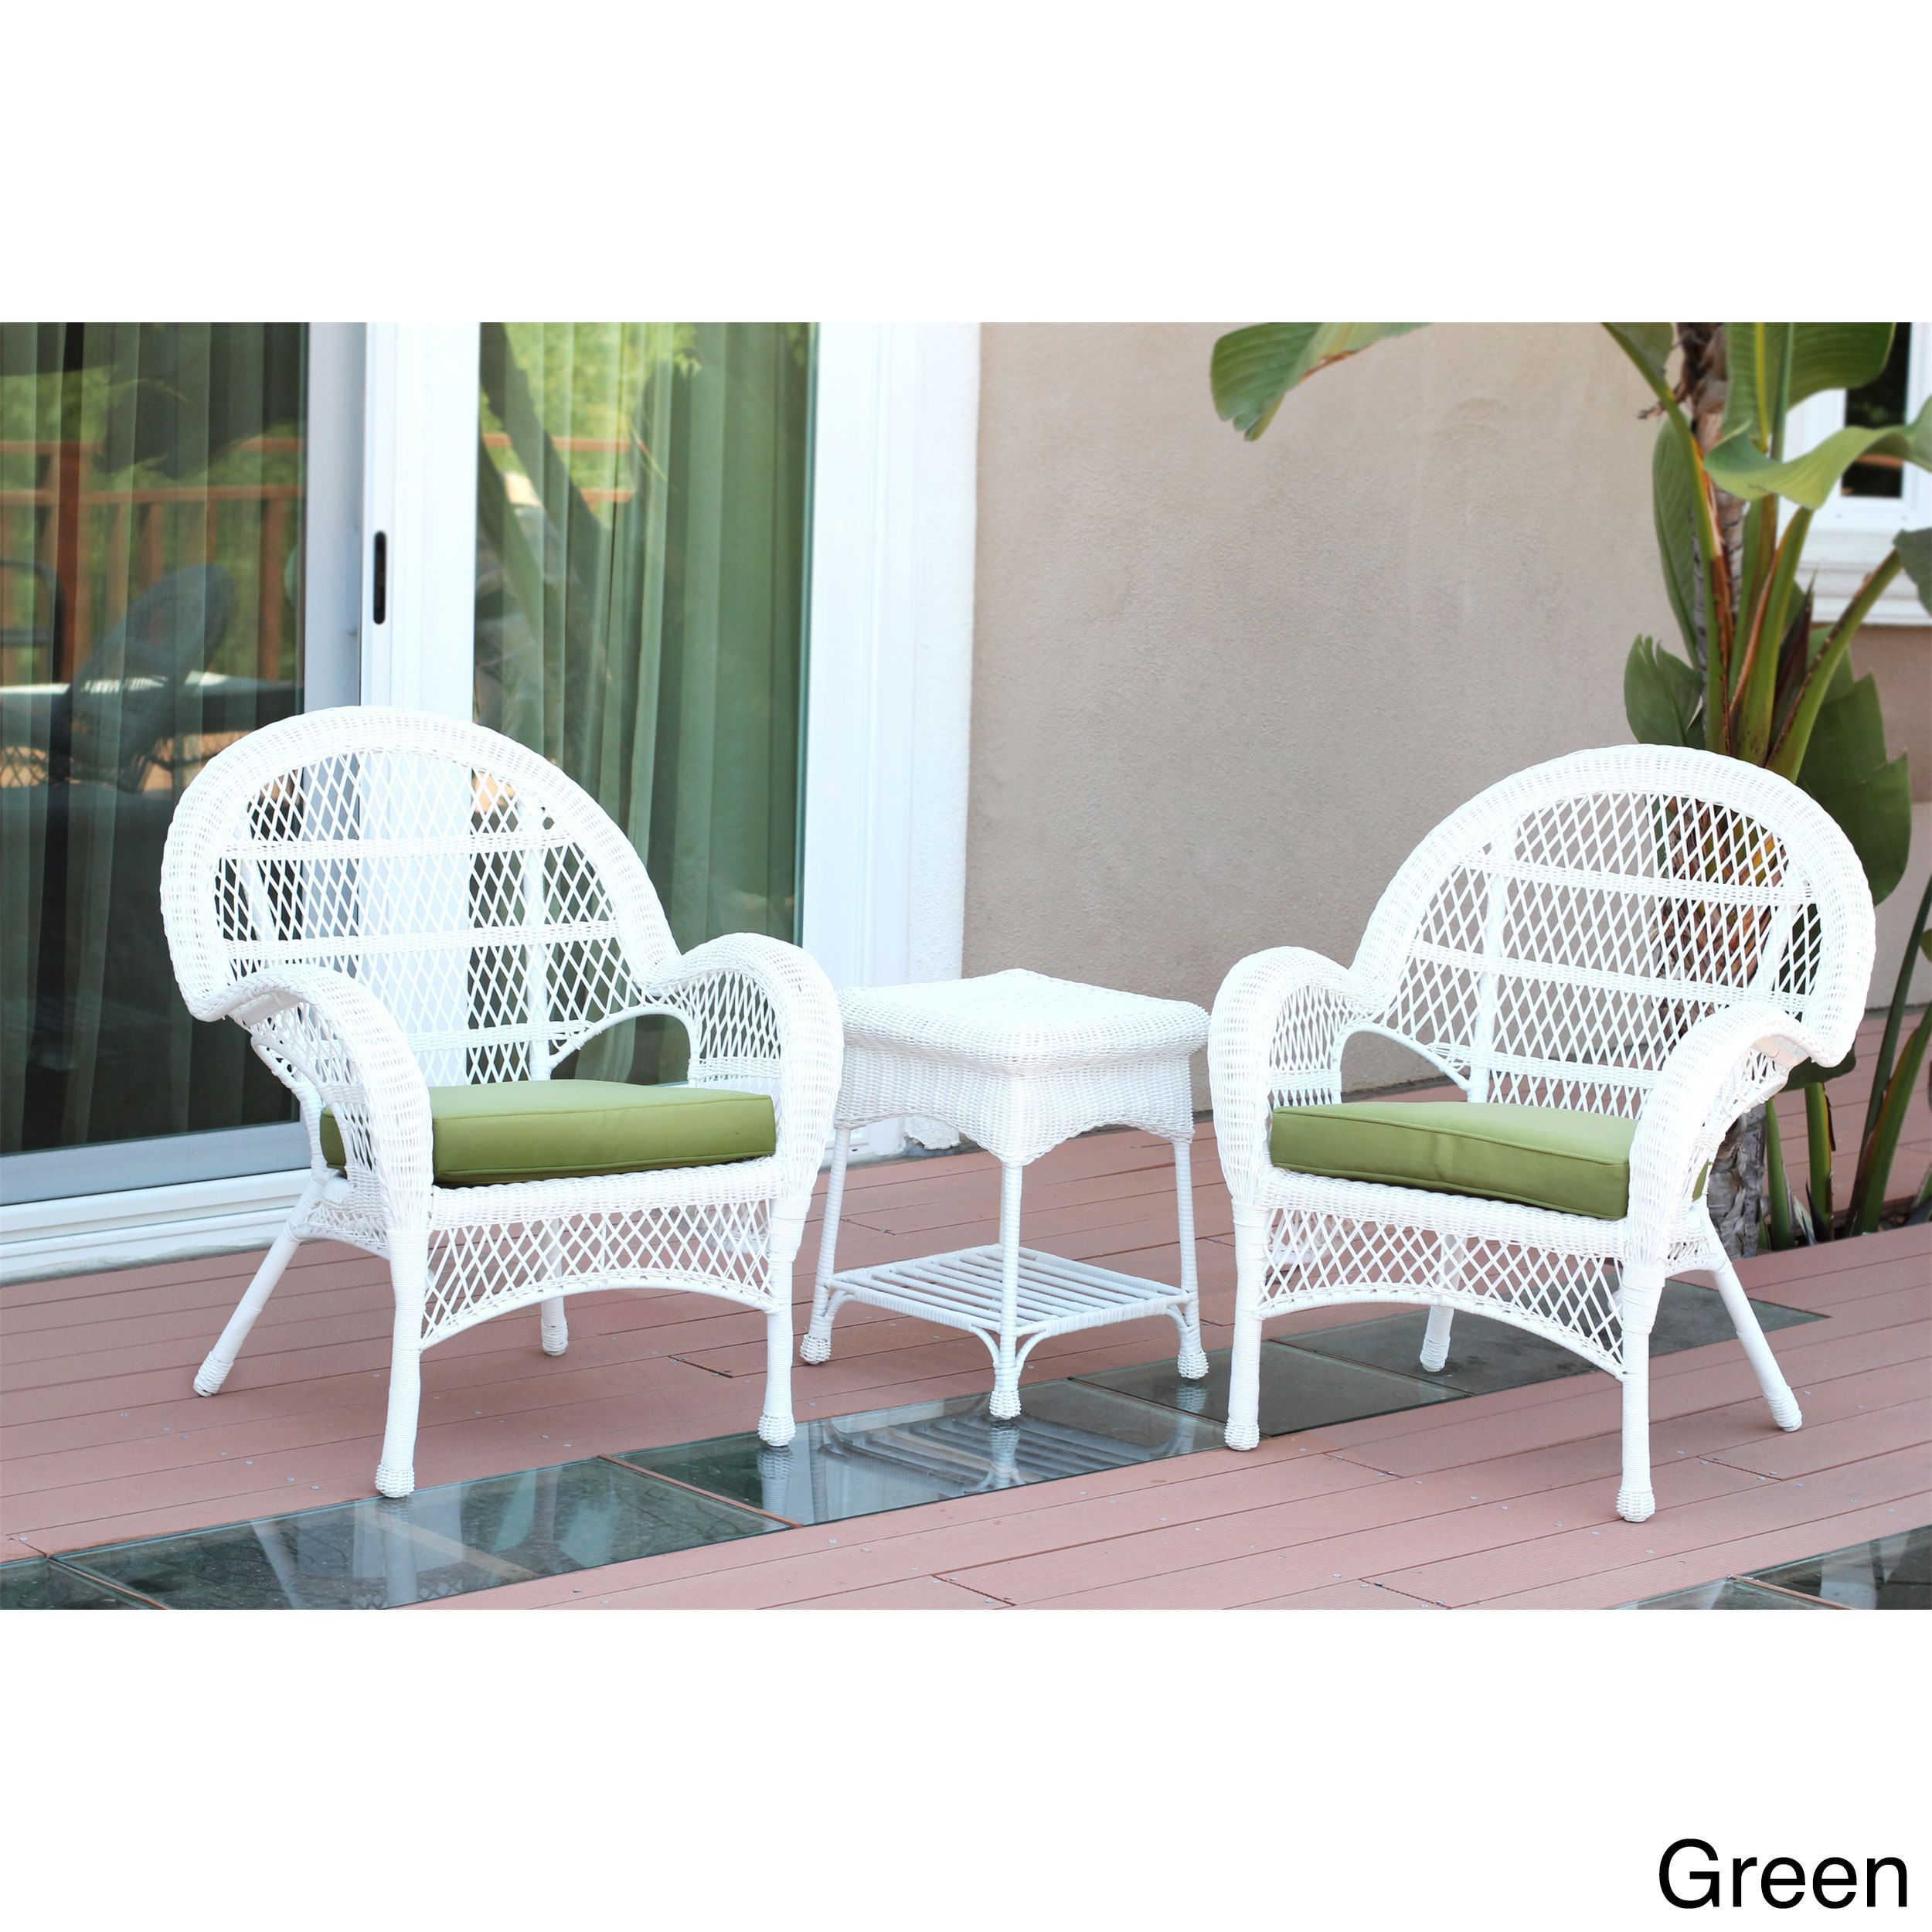 Jeco Santa Maria White Wicker Chair And End Table Set With Cushions